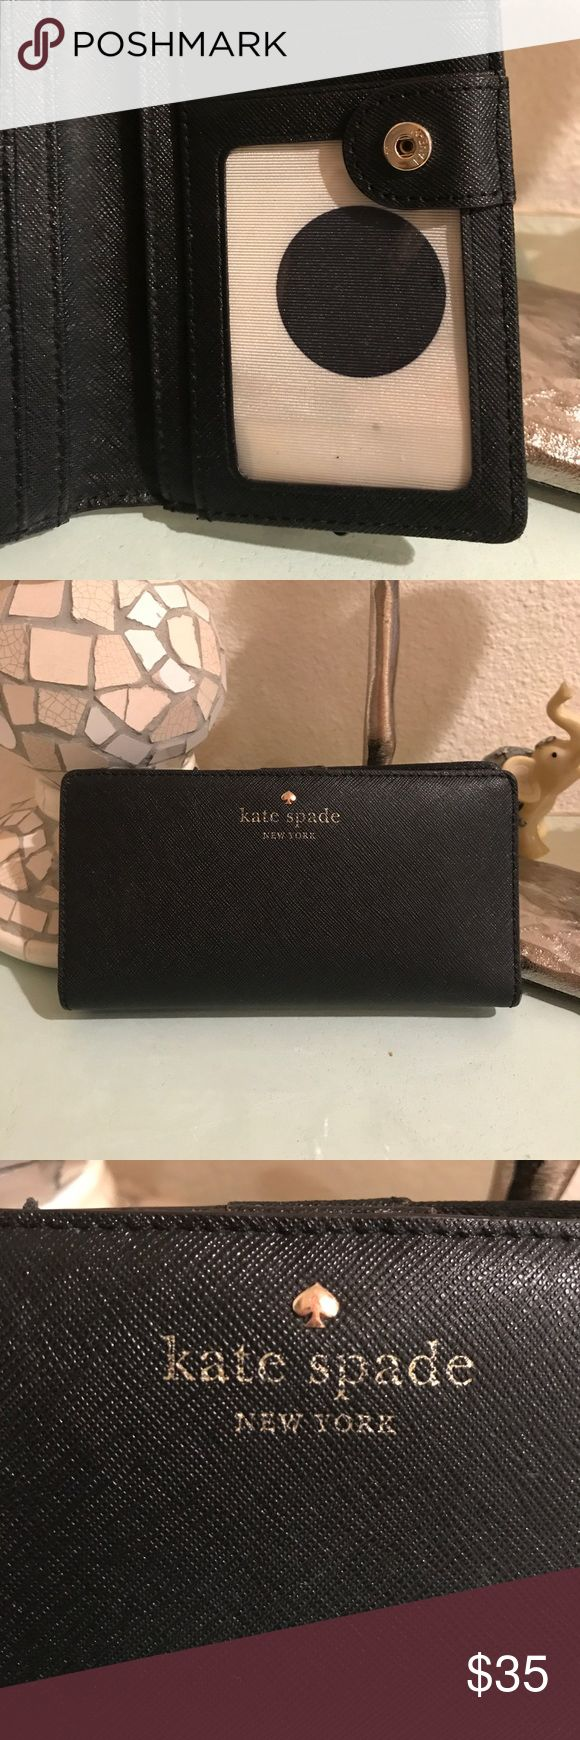 Kate Spade black saffiano leather wallet EUC Kate Spade saffiano leather wallet. Snaps closed, 14 card slots (one of them is transparent for ID's), 4 long inside pockets, zippered coin pocket on the outside, lining is the large black dots with cream background. Tiny dot stain on the inside ID card slot. The front Kate Spade logo is fading in the front and has slight wear on the hardware. Still a beautiful useful wallet. kate spade Bags